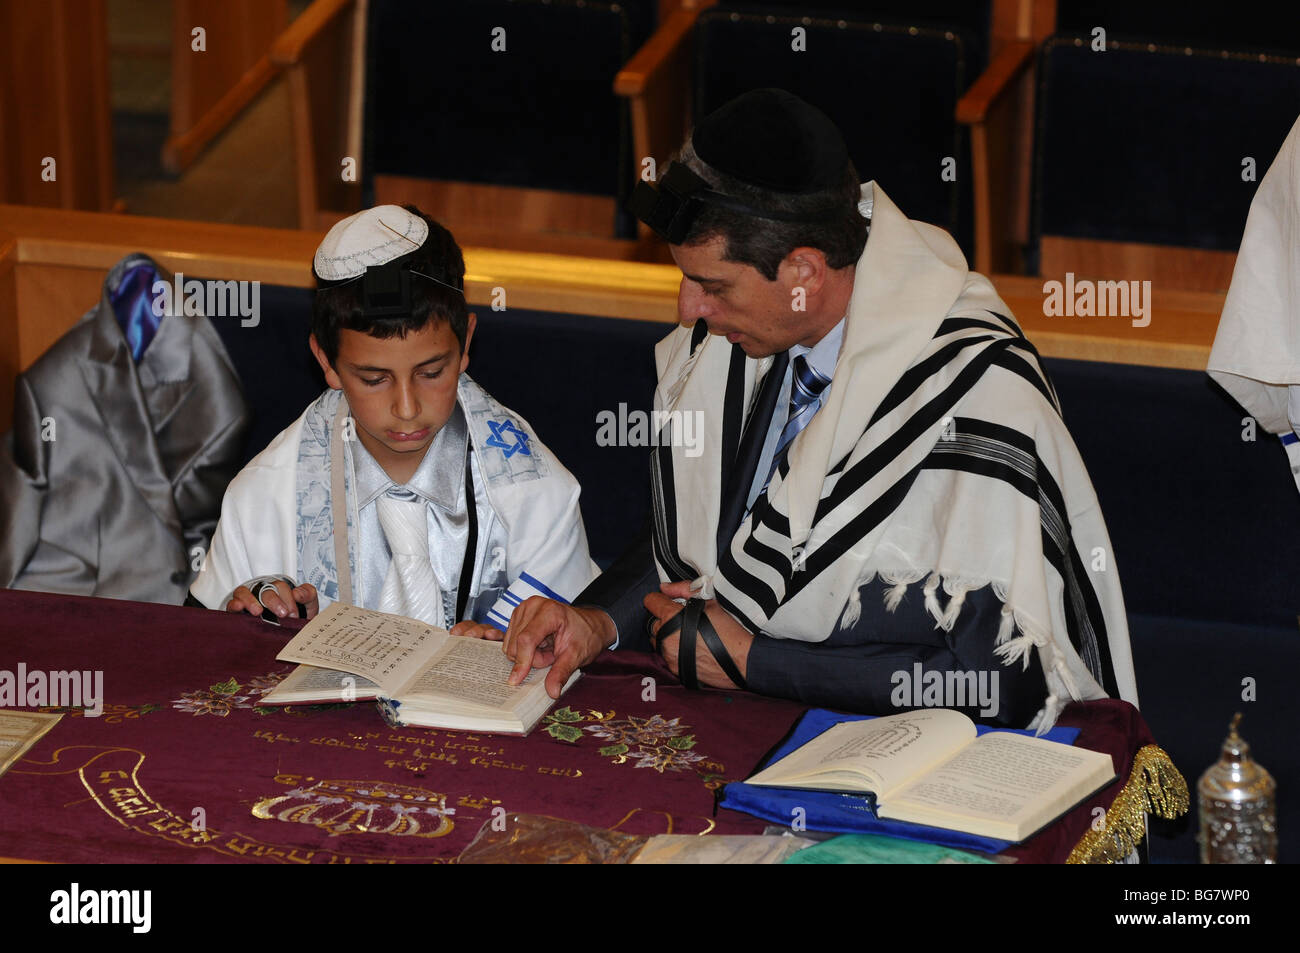 France, Paris, Interior of a synagogue Bar Mitzvah ceremony - Stock Image